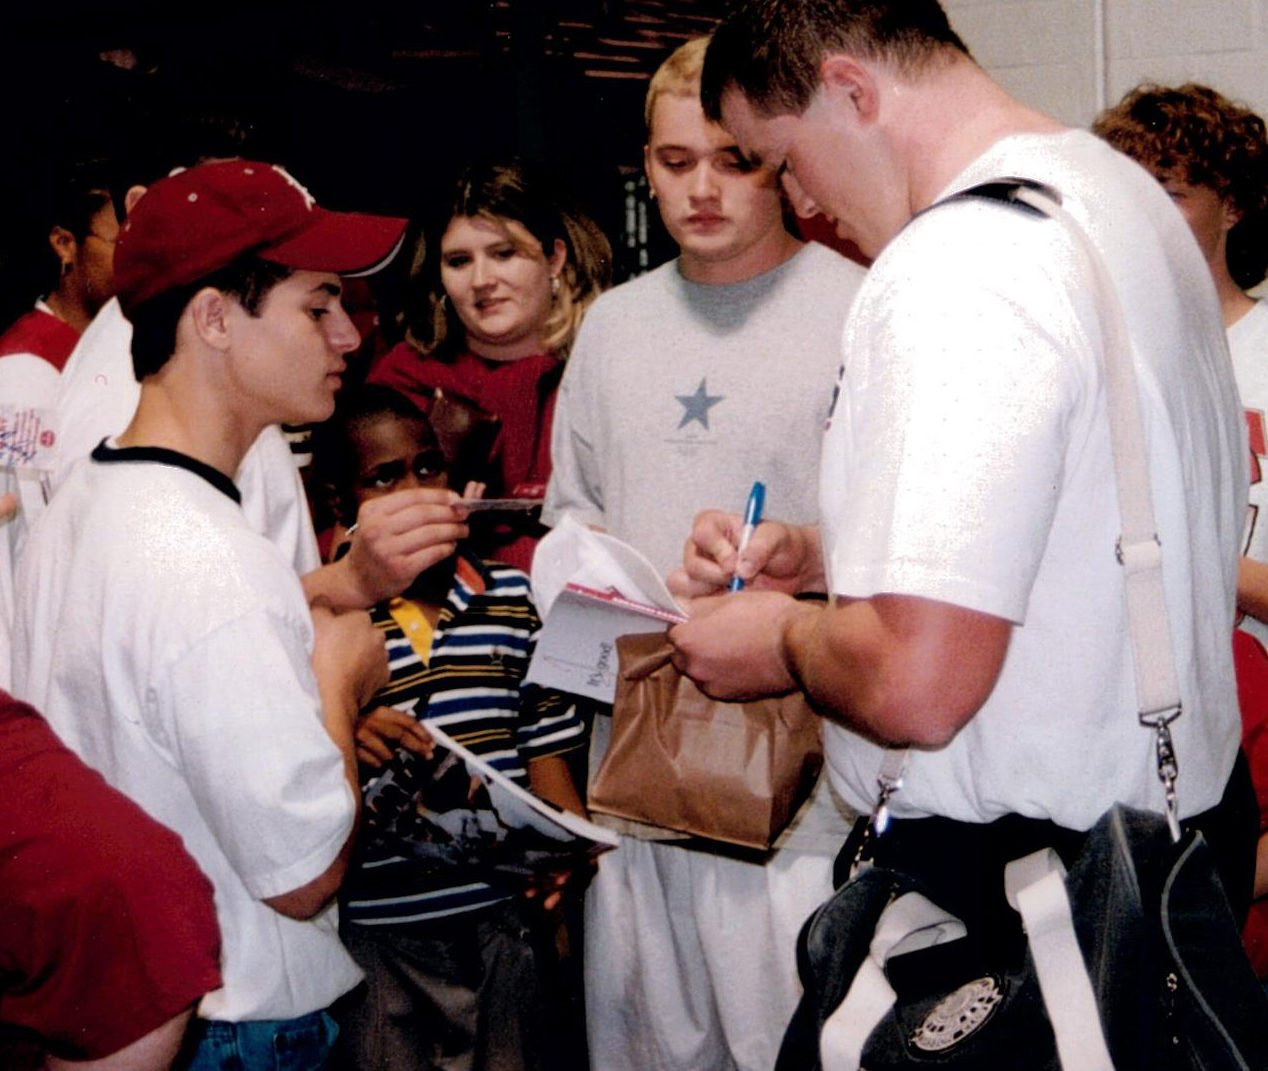 Brandon Burlsworth signs autographs after a game during the 1998 season. (Photo by Marty Burlsworth)